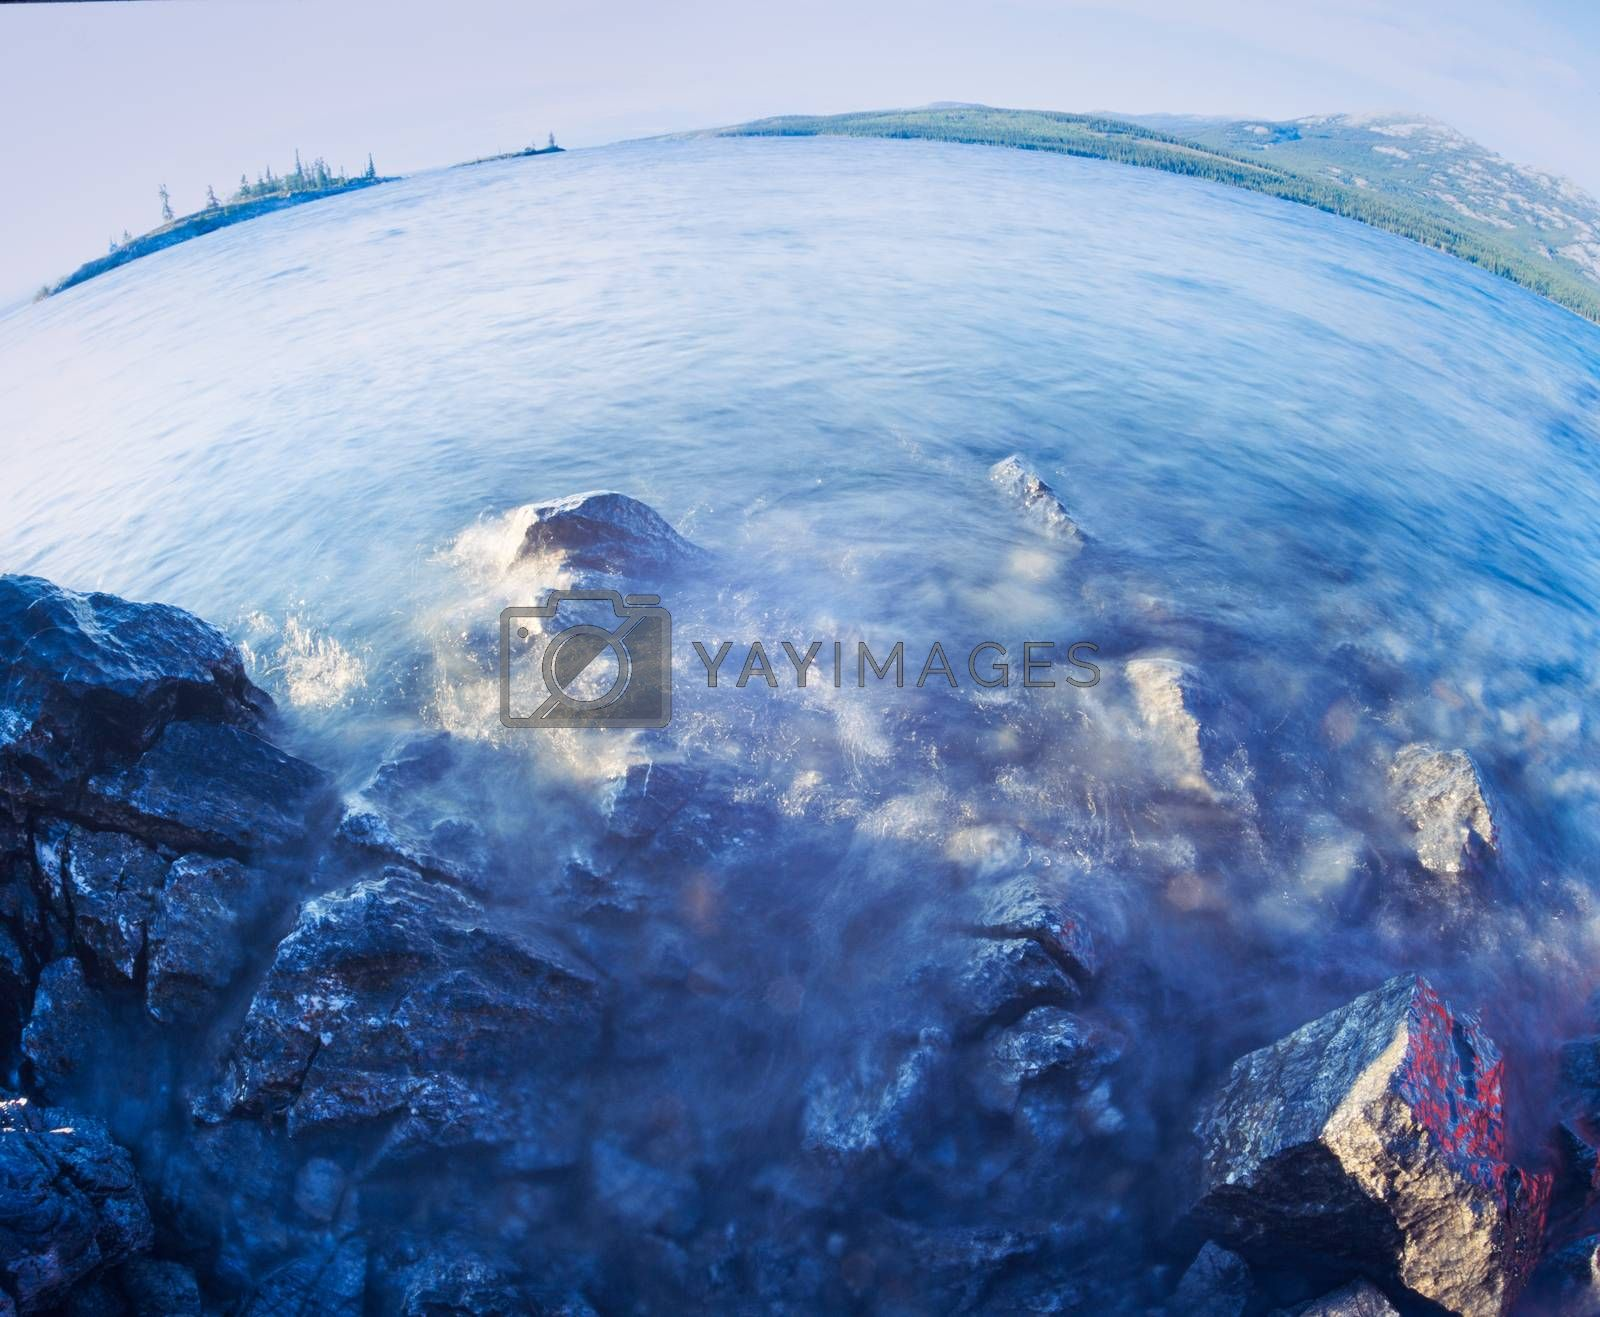 Extreme fisheye wide angle view of Tagish Lake water surface landscape, Yukon Territory, Canada